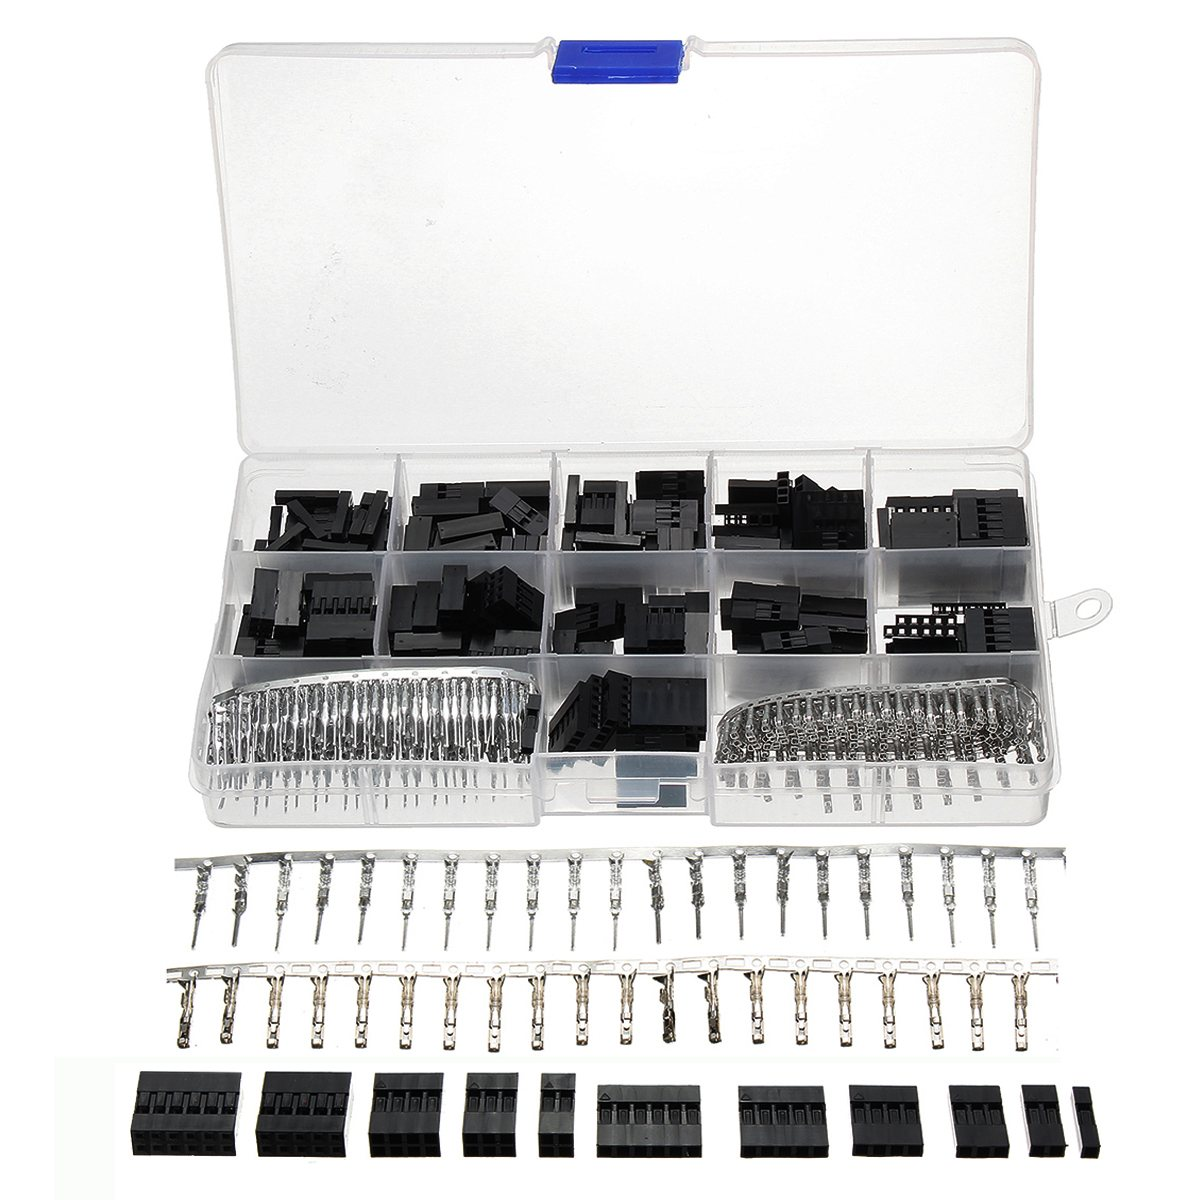 Newest Hot Sale 620Pcs/set 2mm Wire Jumper Pin Header Connector Housing Kit For Dupont and Crimp Pins